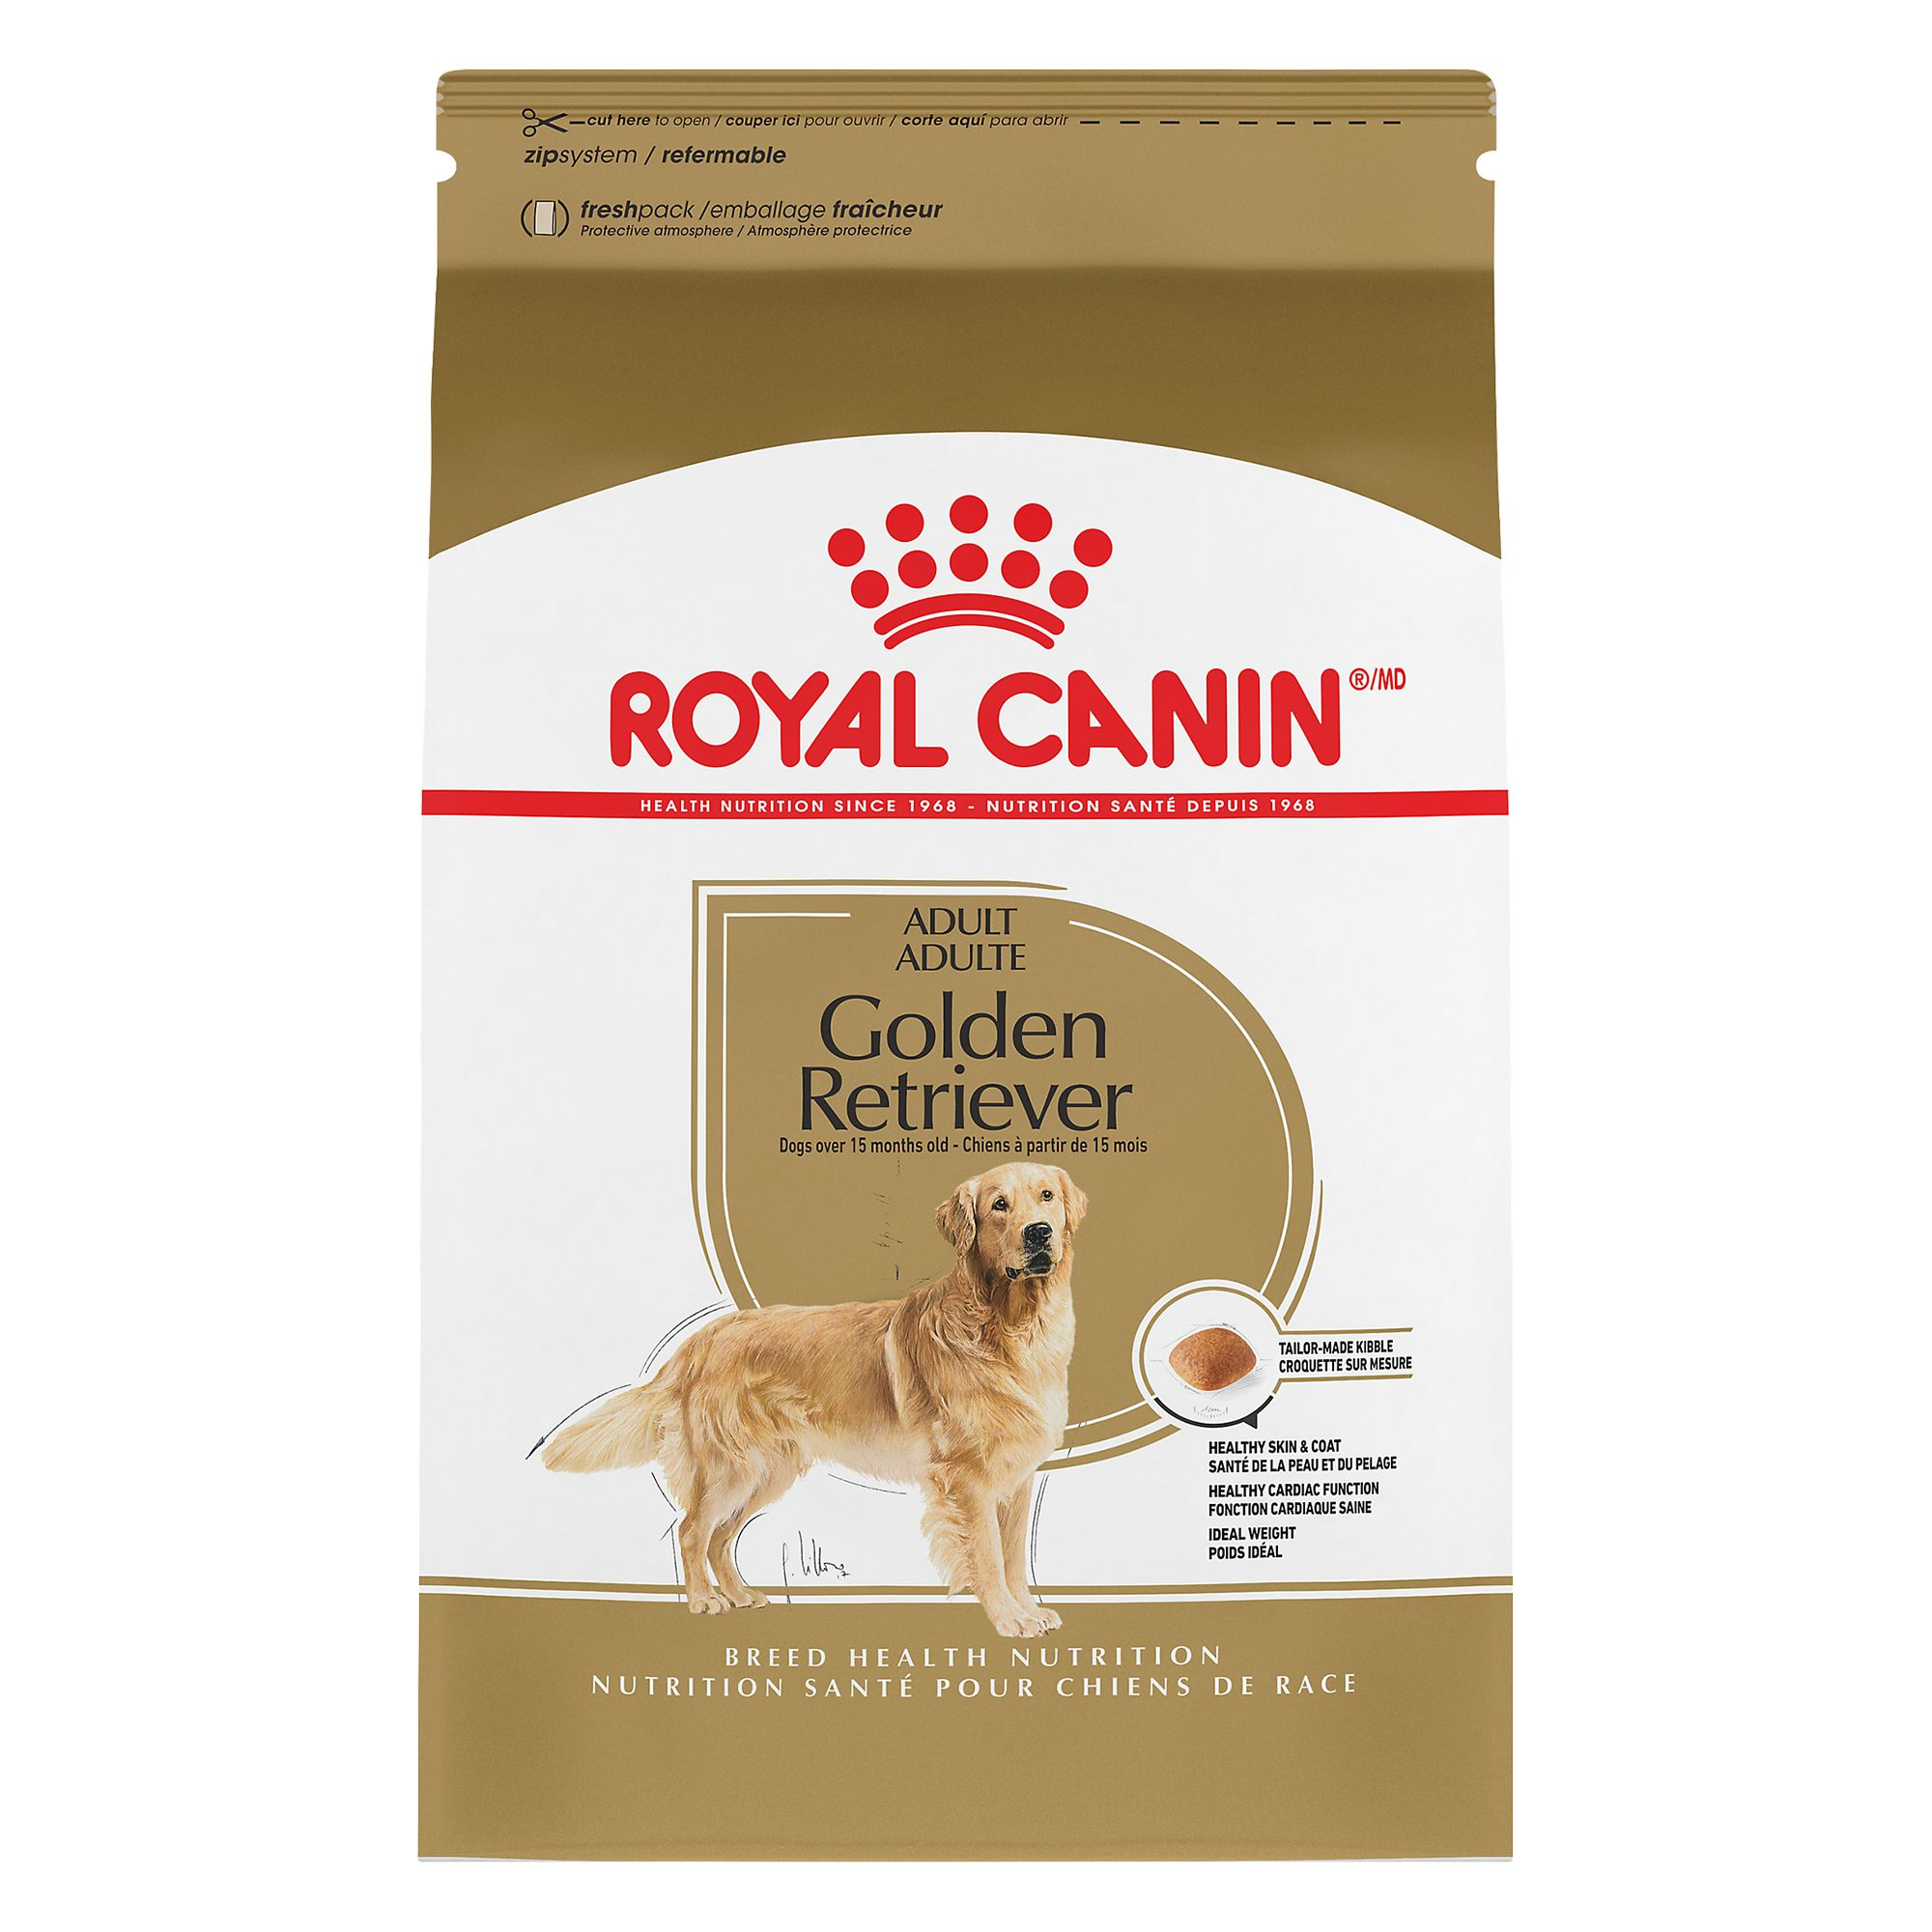 Royal Canin® Breed Health Nutrition™ Golden Retriever Adult Dog Food